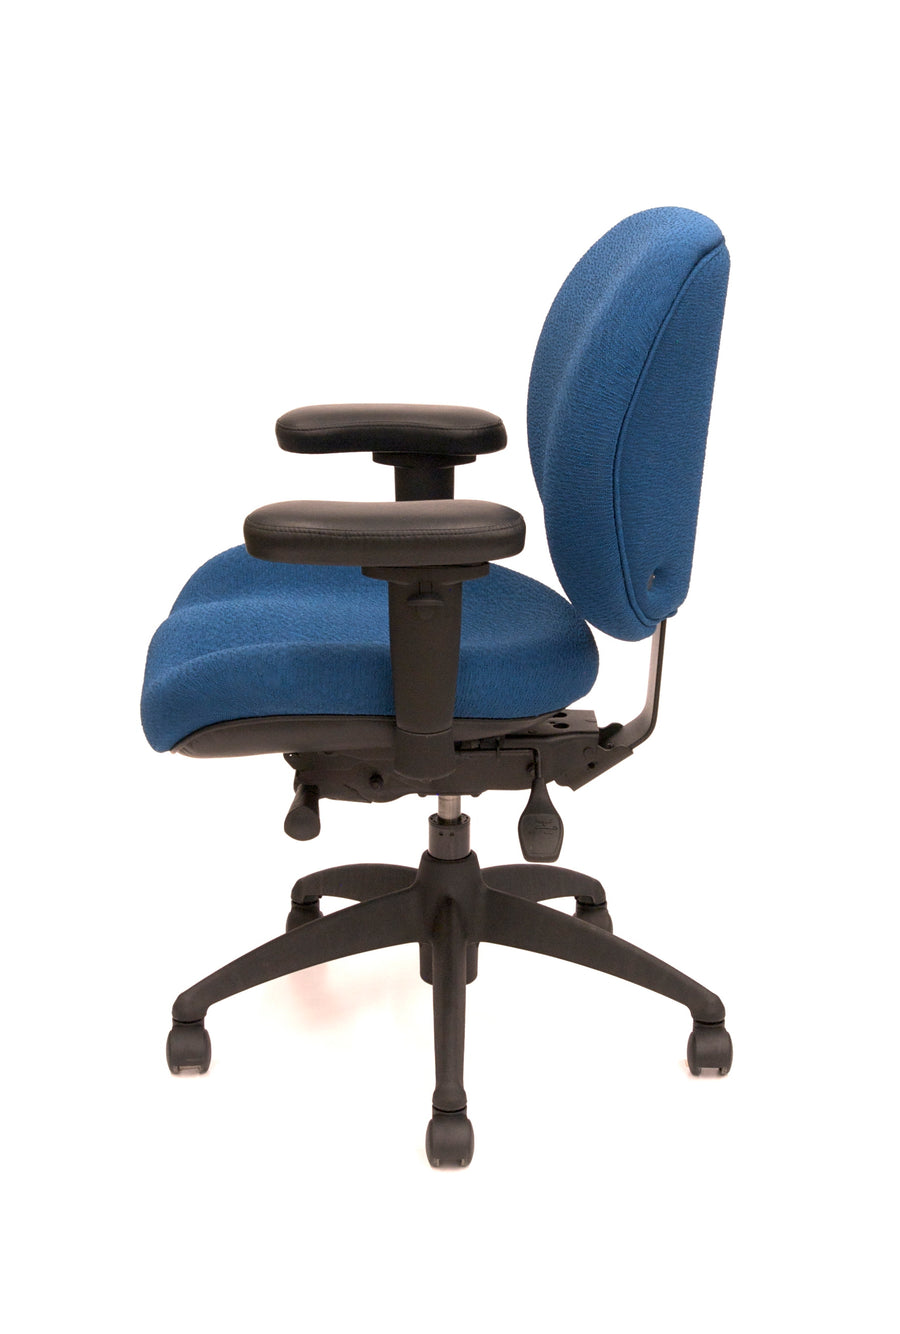 Shop Ergonomic Office Chairs Relax The Back